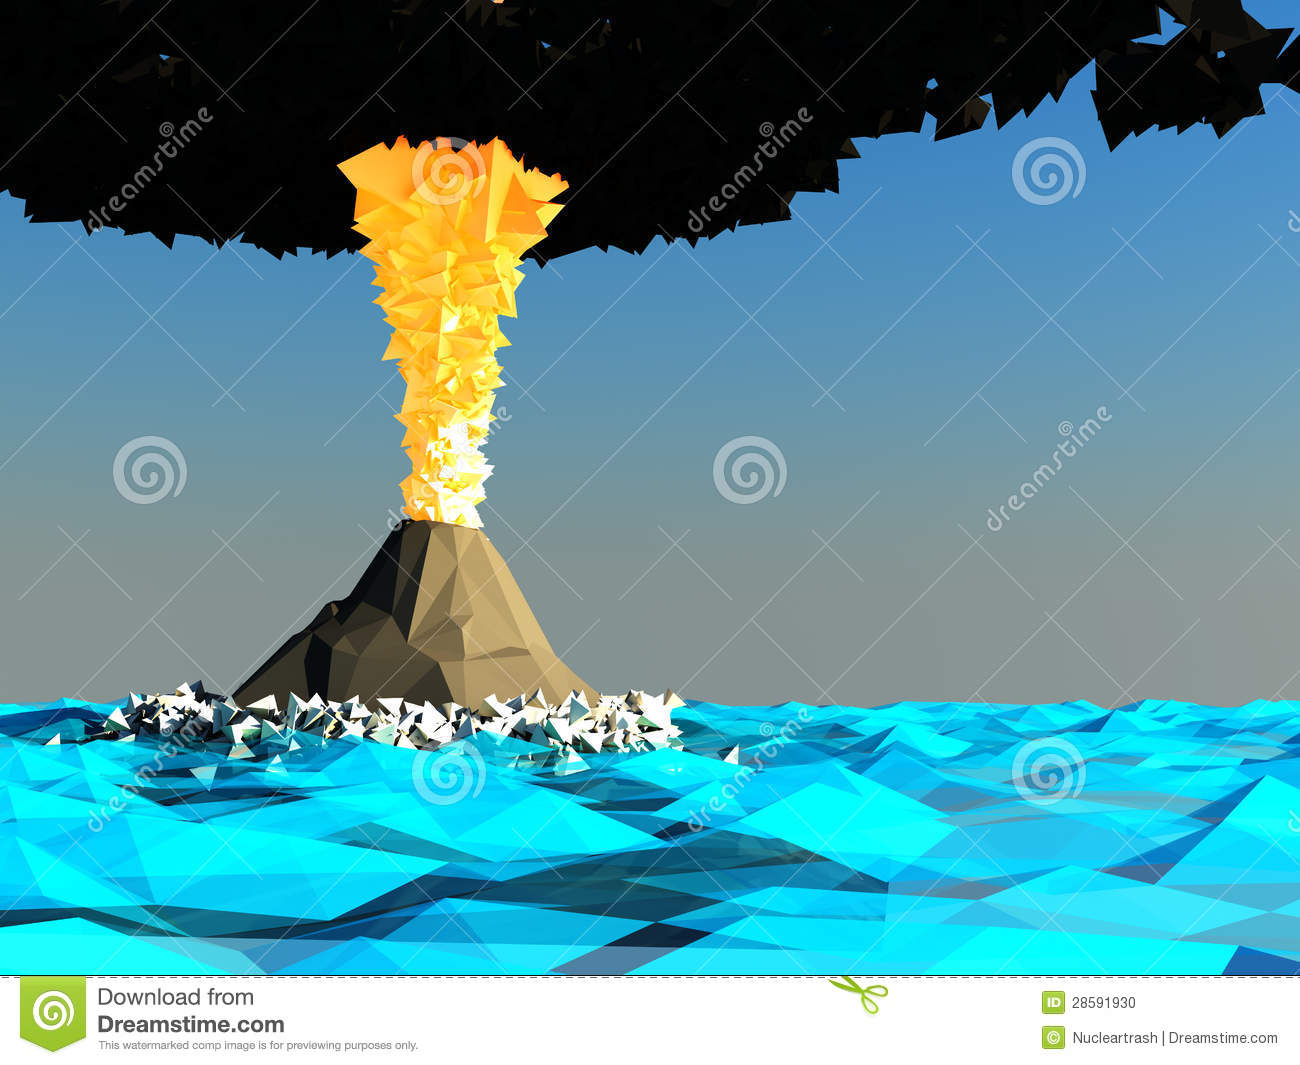 Volcano clipart blue Clipart #4 Volcanic drawings Download